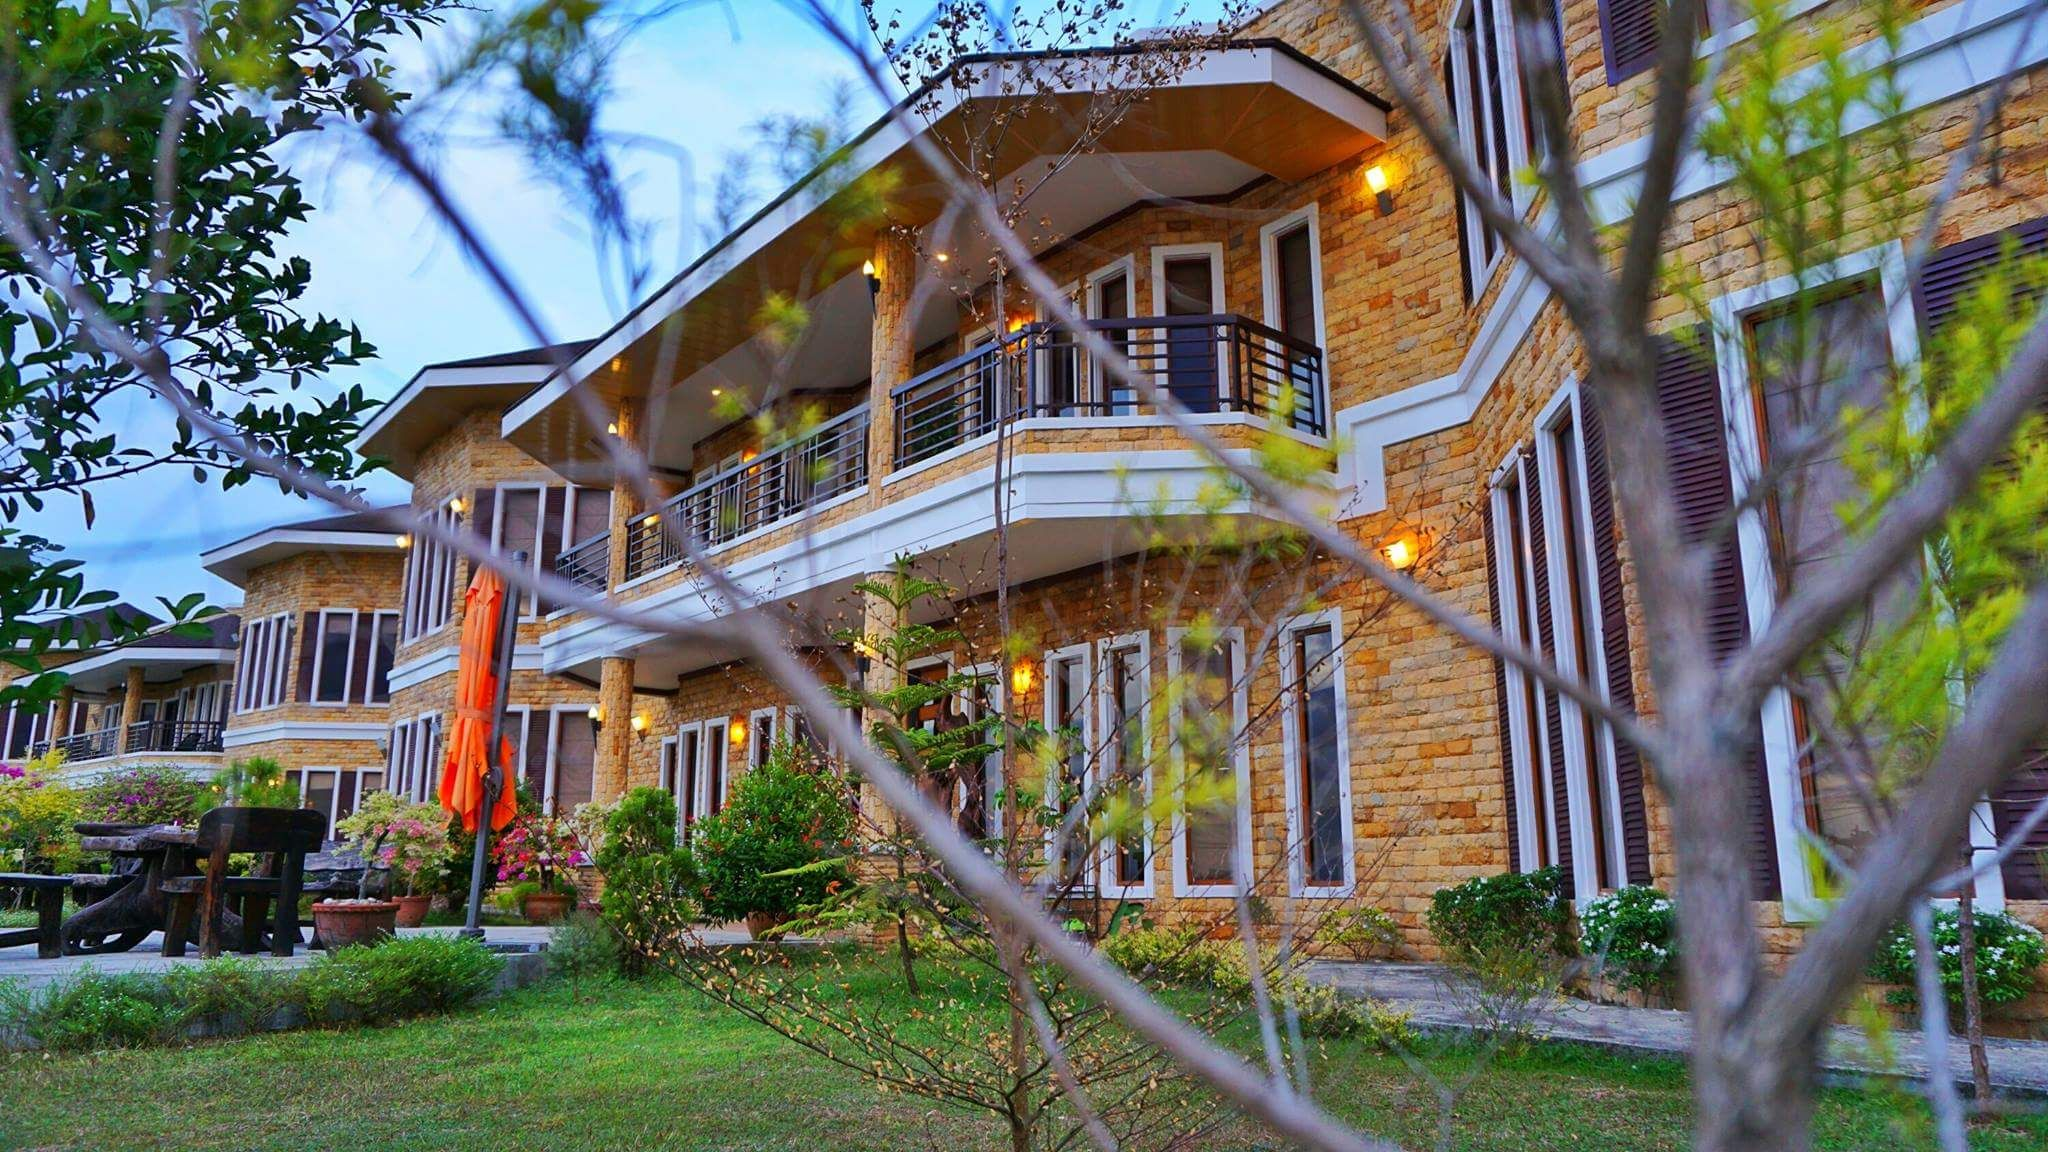 Beach Room Studio @ Castle View - Guest suites for Rent in Island Garden  City of Samal, Davao Region, Philippines